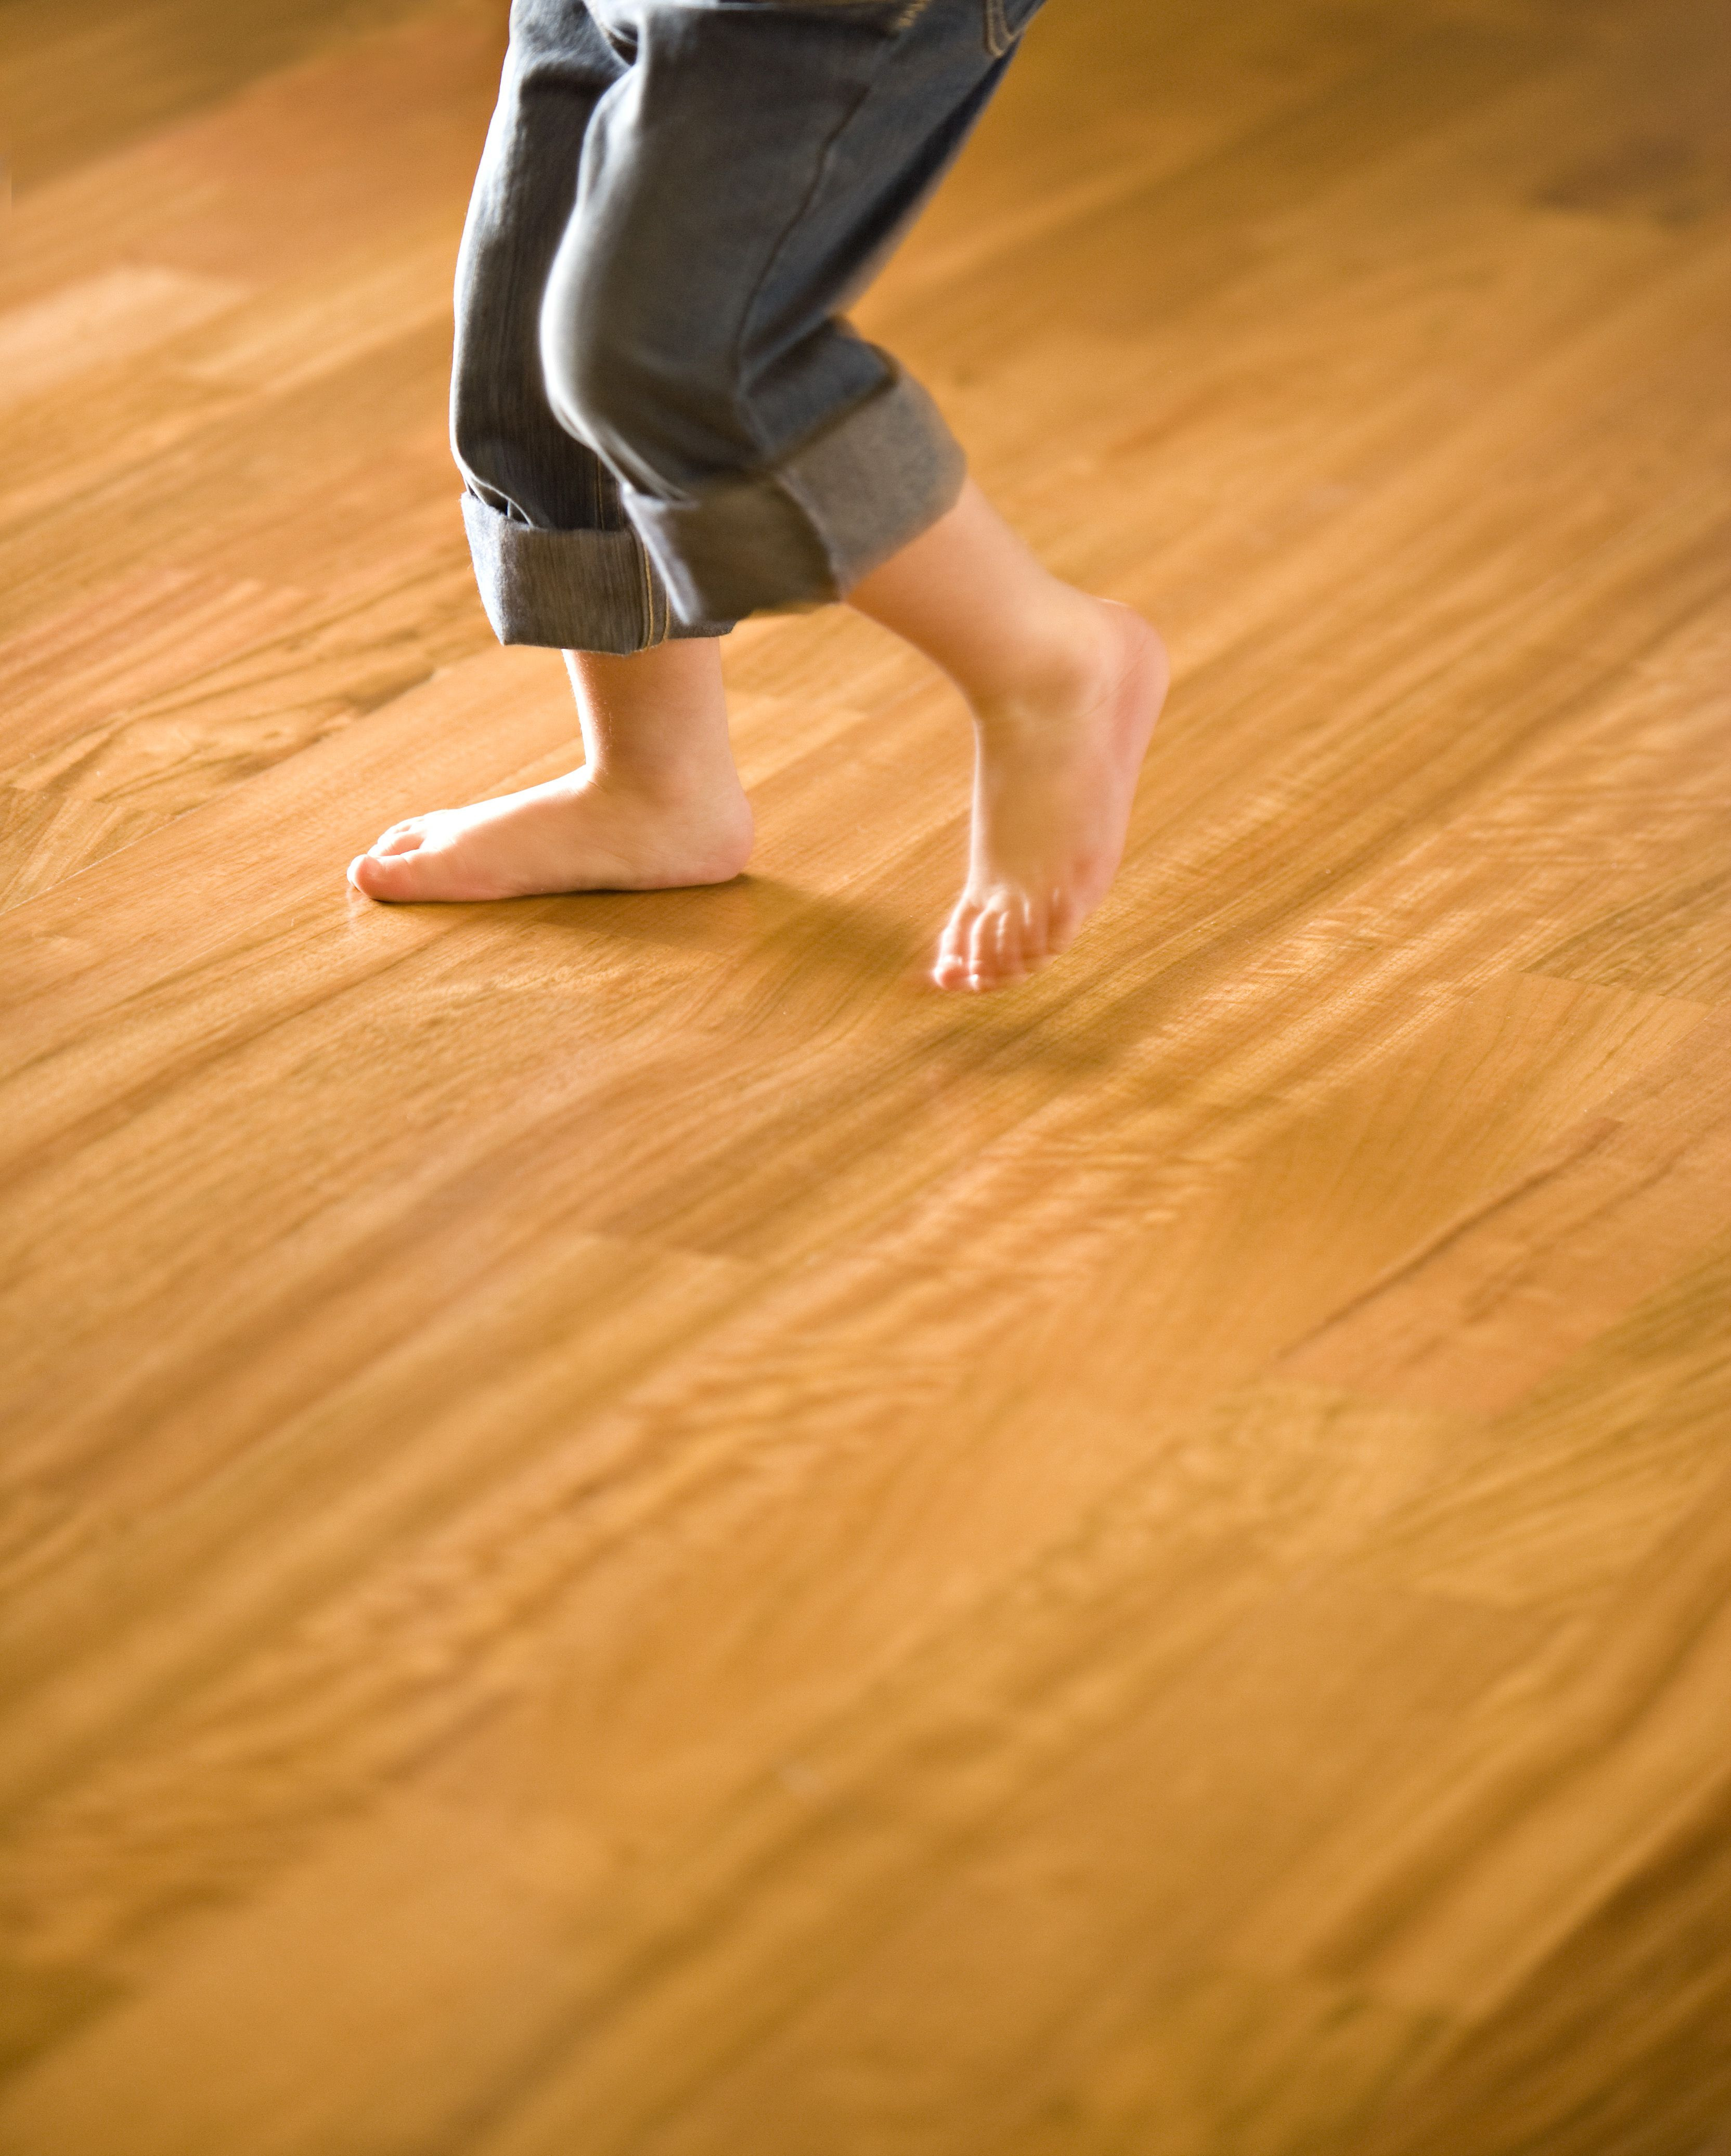 bona hardwood floor cleaner refill 128 oz of make sure your hardwood floors are clean for the tiny bare feet in within make sure your hardwood floors are clean for the tiny bare feet in your home